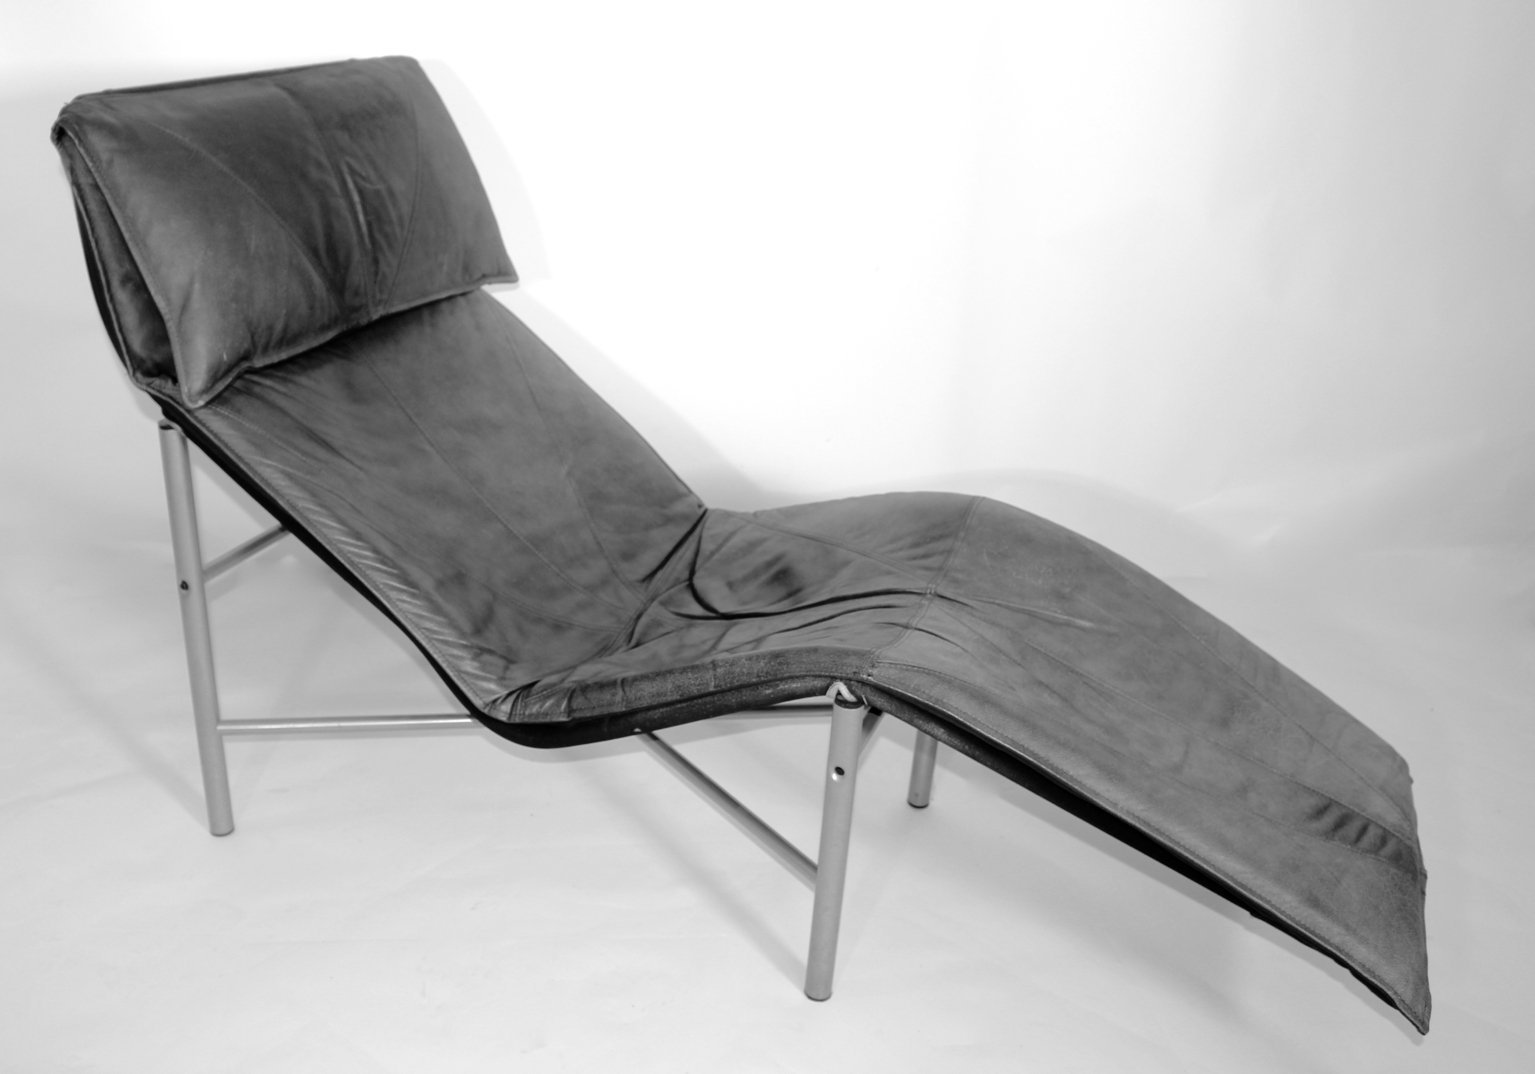 Leather chaise longue by tord bjorklund 1970s for sale at for Buy chaise longue